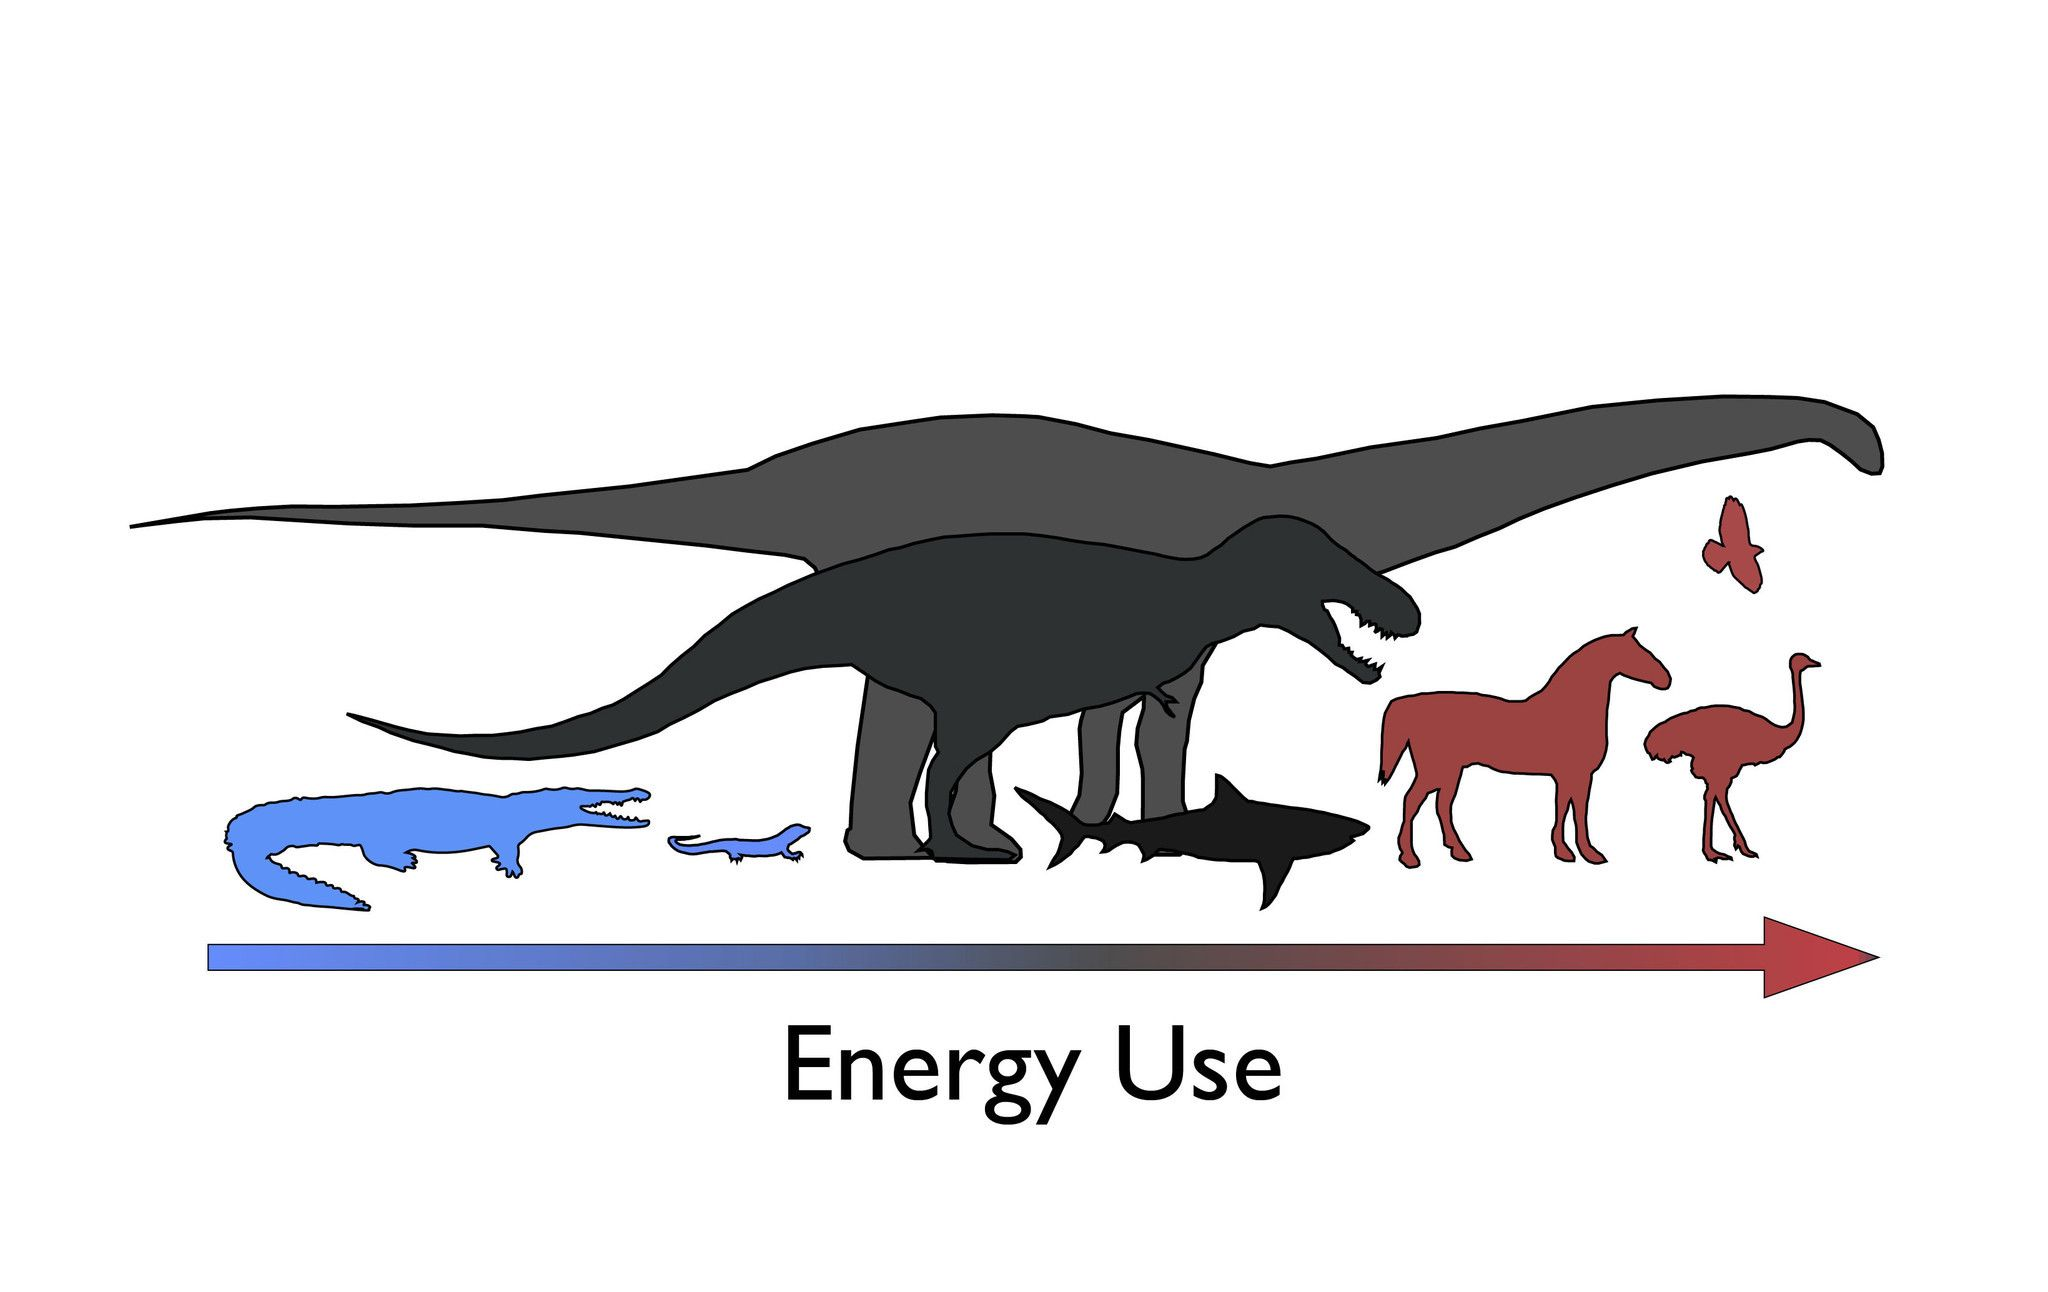 Dinosaurs Were Neither Cold Blooded Nor Warm Blooded